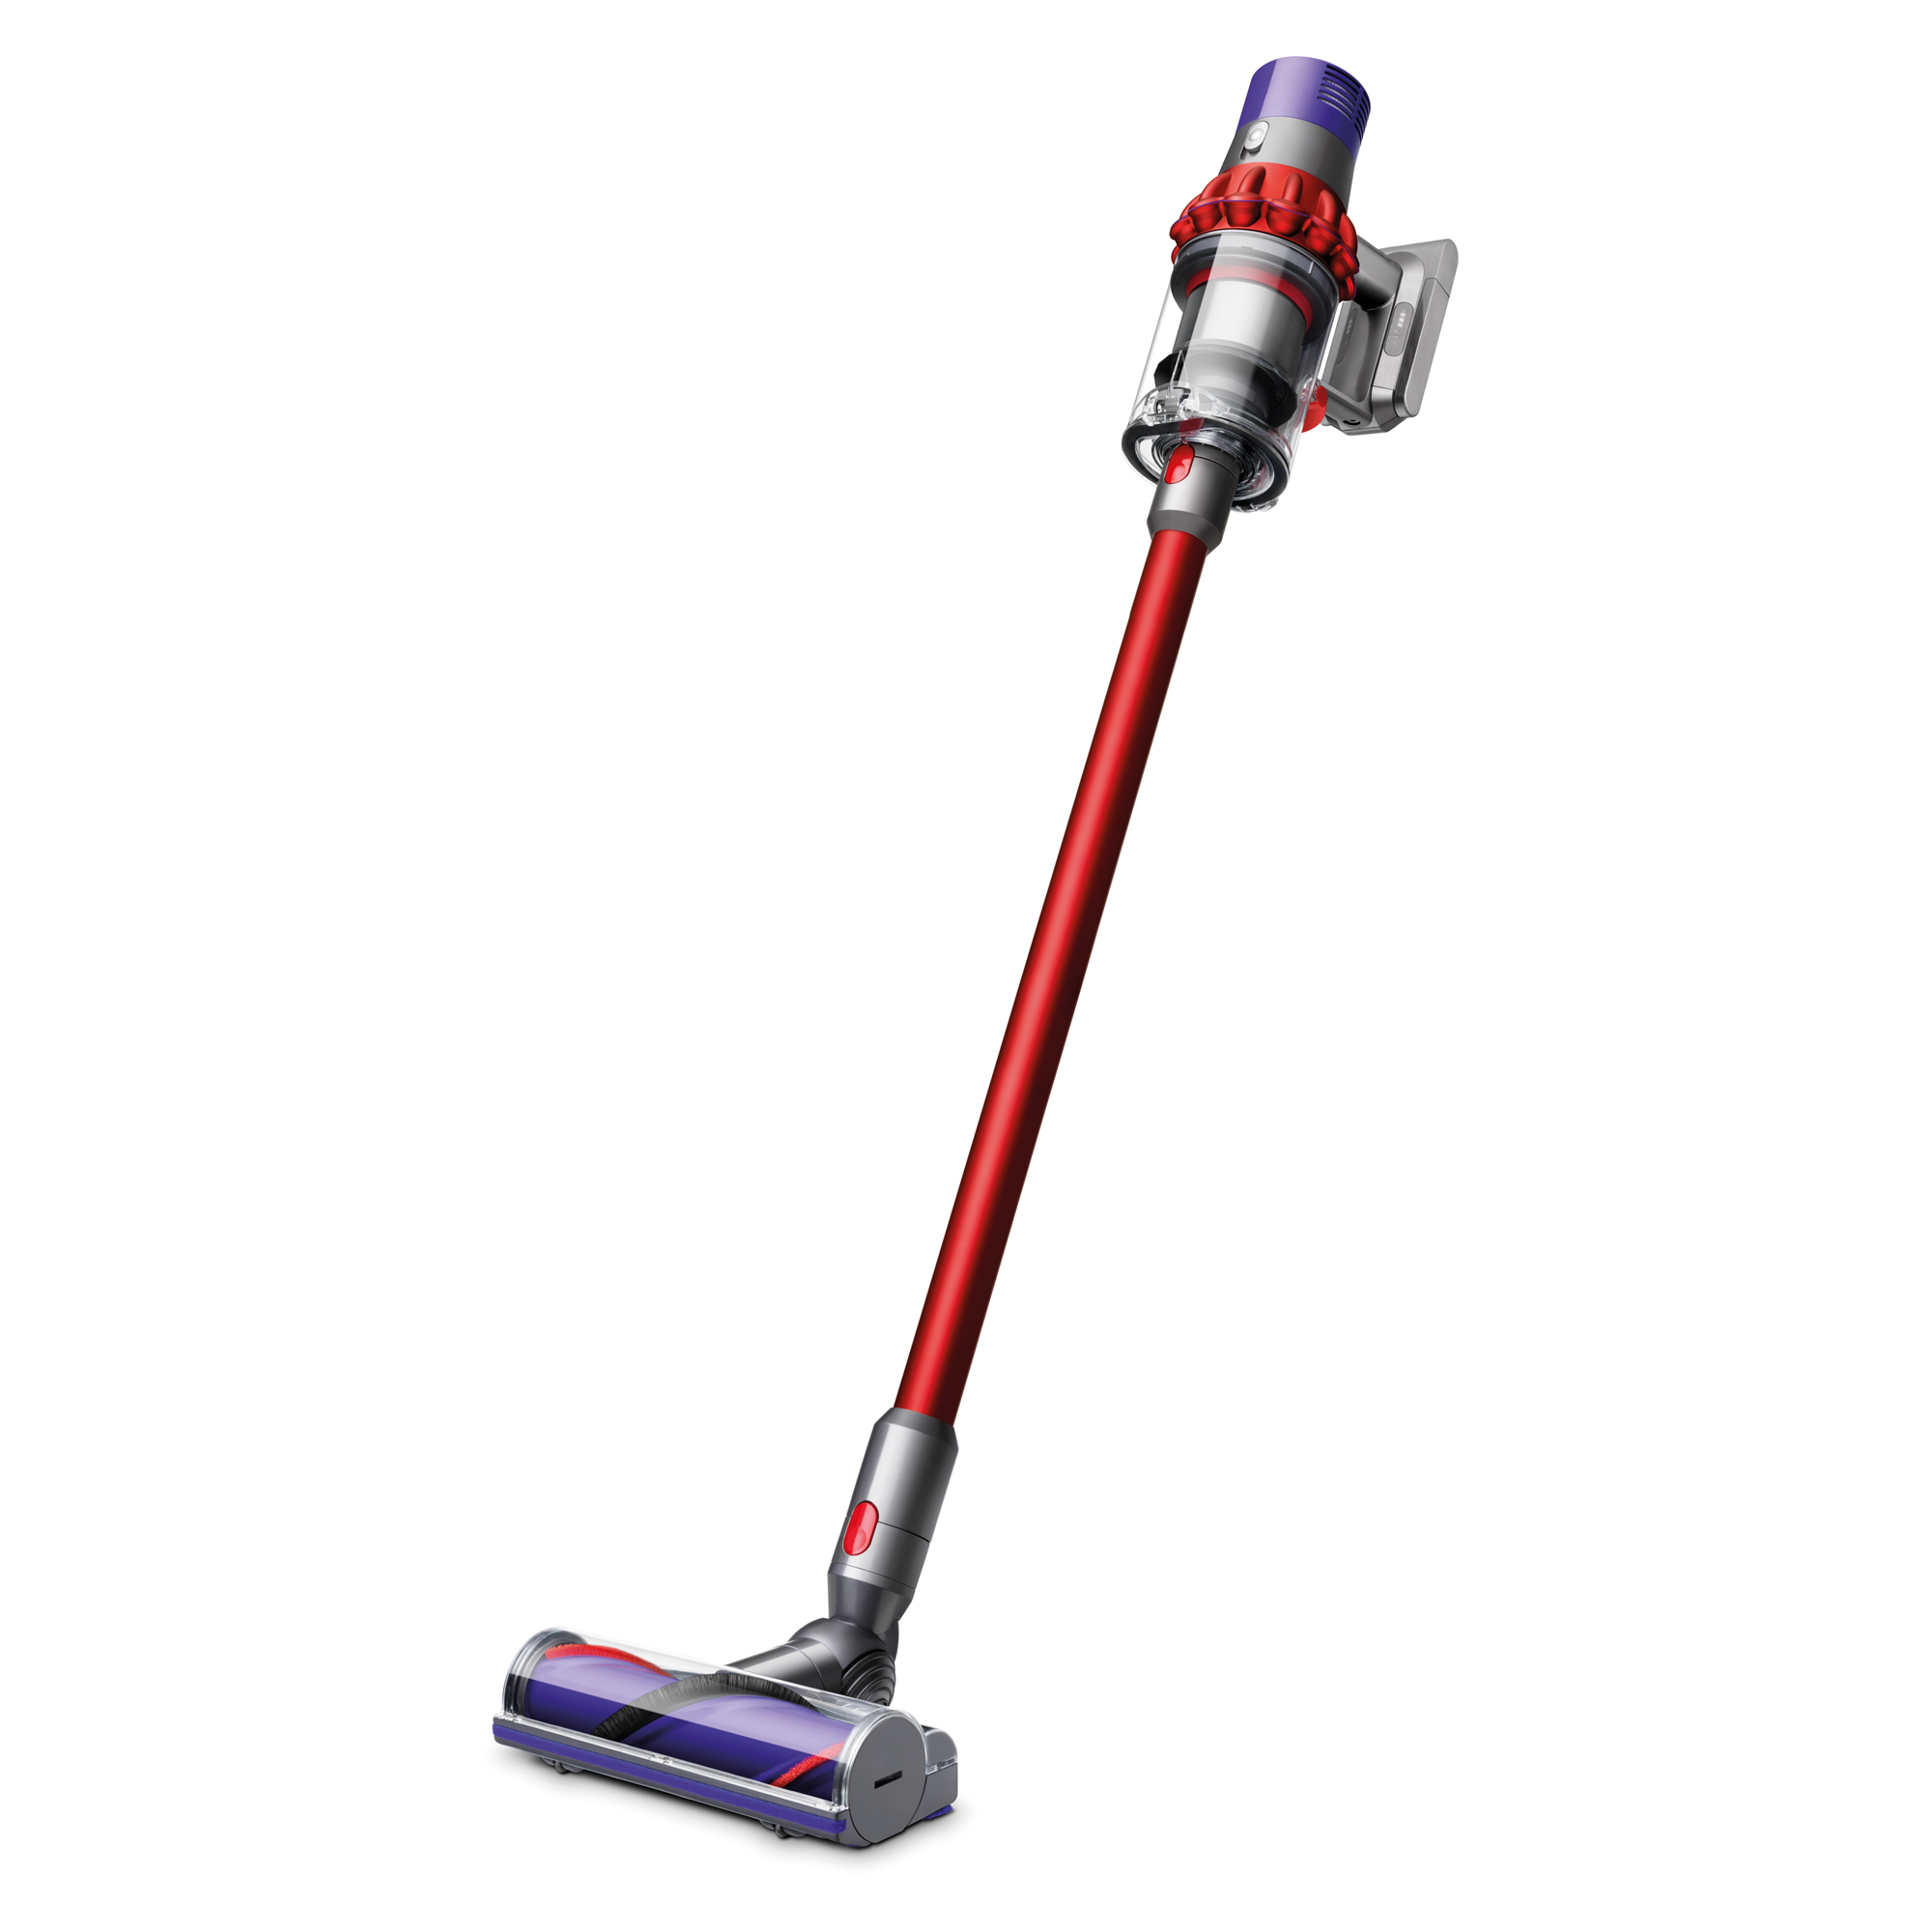 Details about Dyson Official Outlet - Cyclone V10 MH R Vacuum - Refurbished  - 1 YEAR WARRANTY